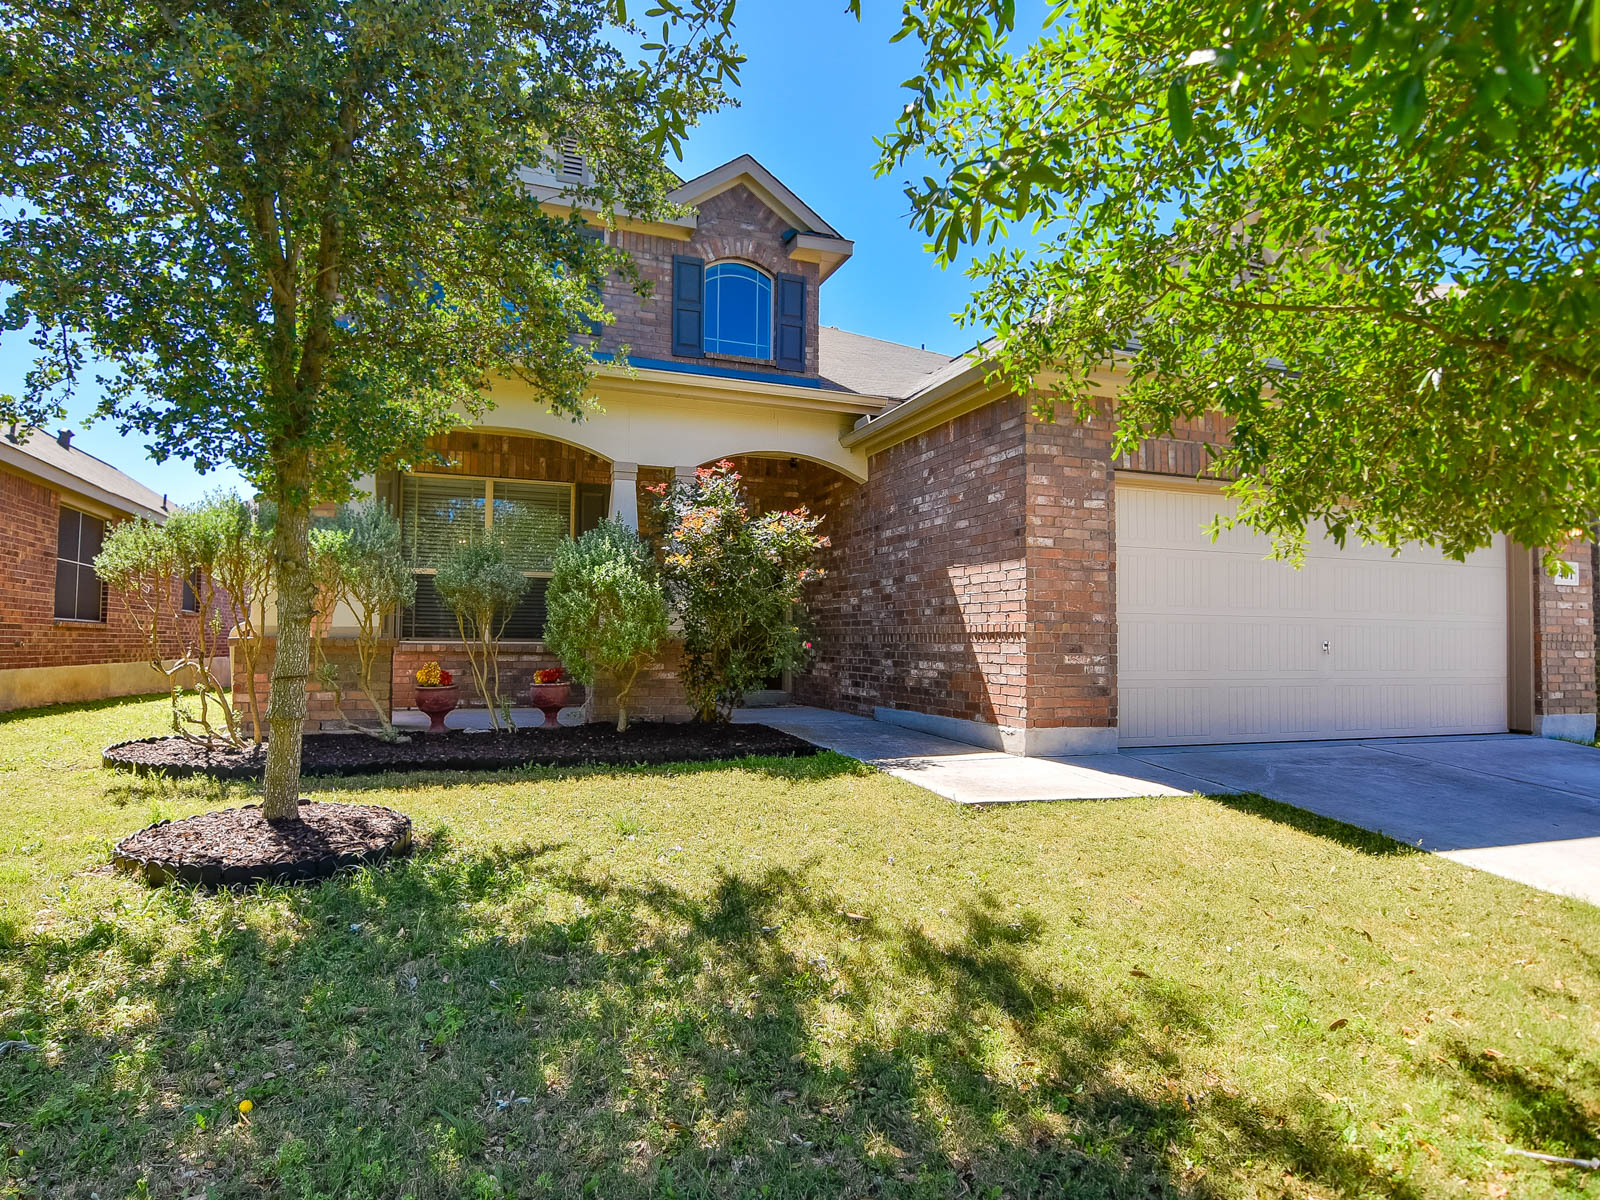 Single Family Home for Sale at Gently Lived in Home in Cibolo Valley Ranch 401 Prickly Pear Dr Cibolo, Texas 78108 United States